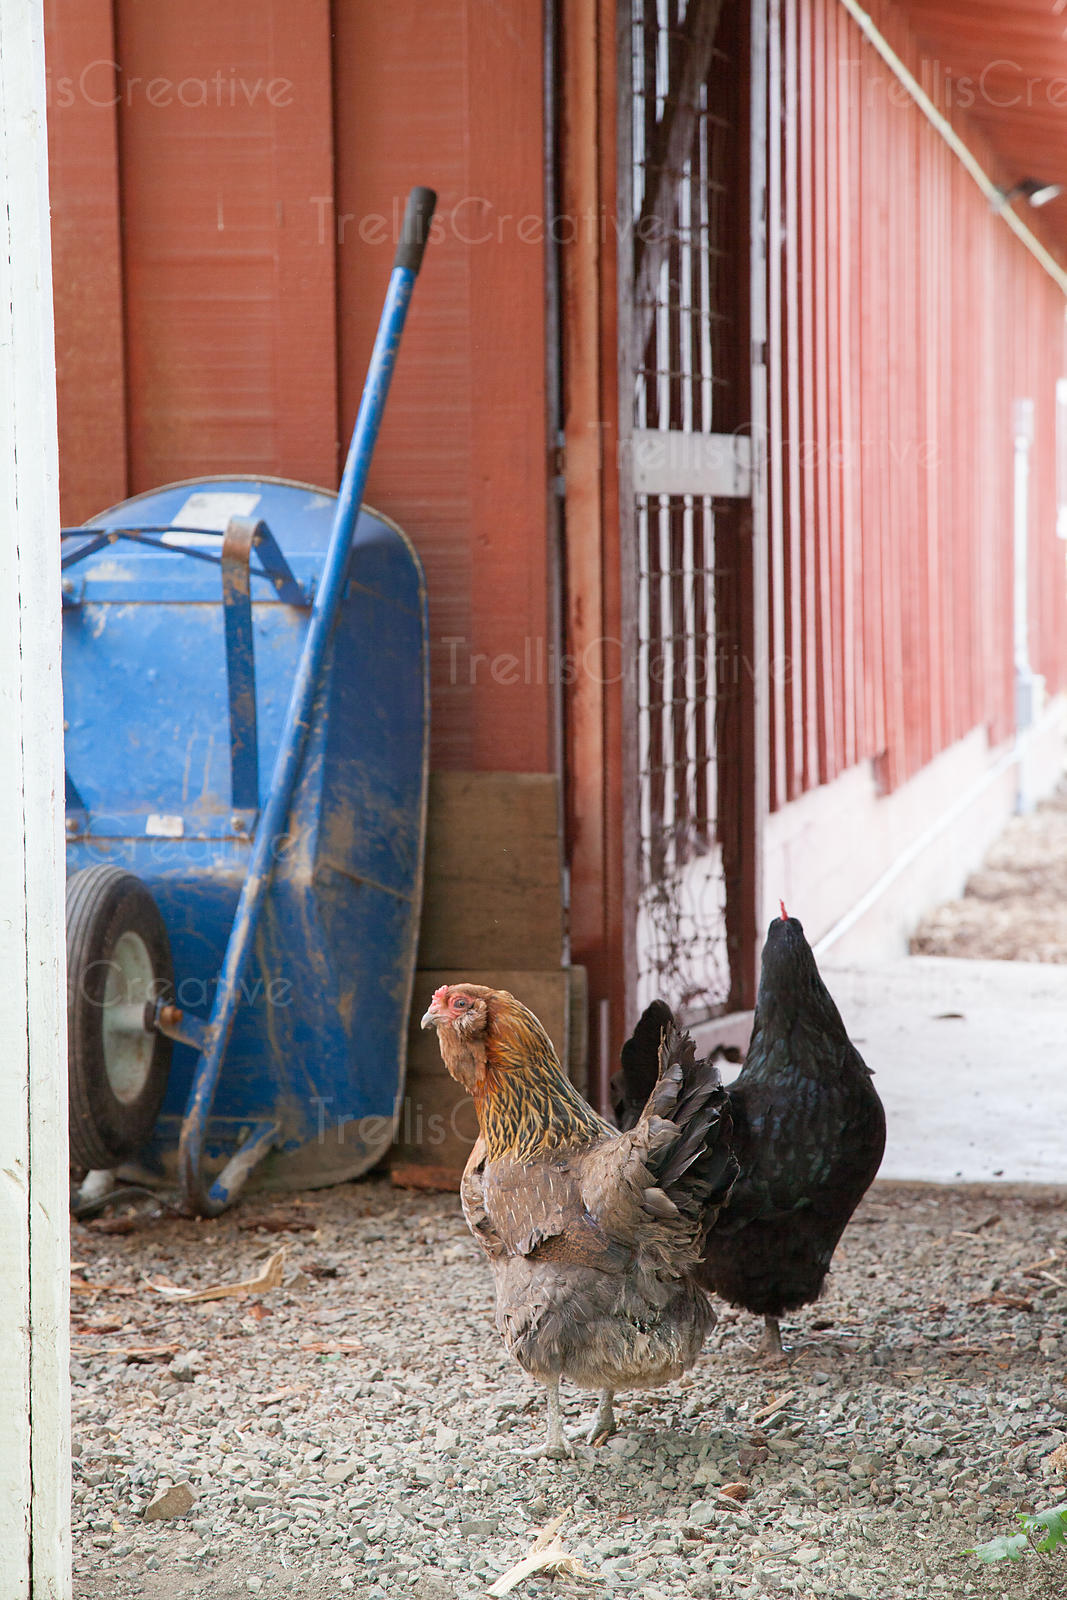 Two chickens with a blue whlle barrow outside a barn